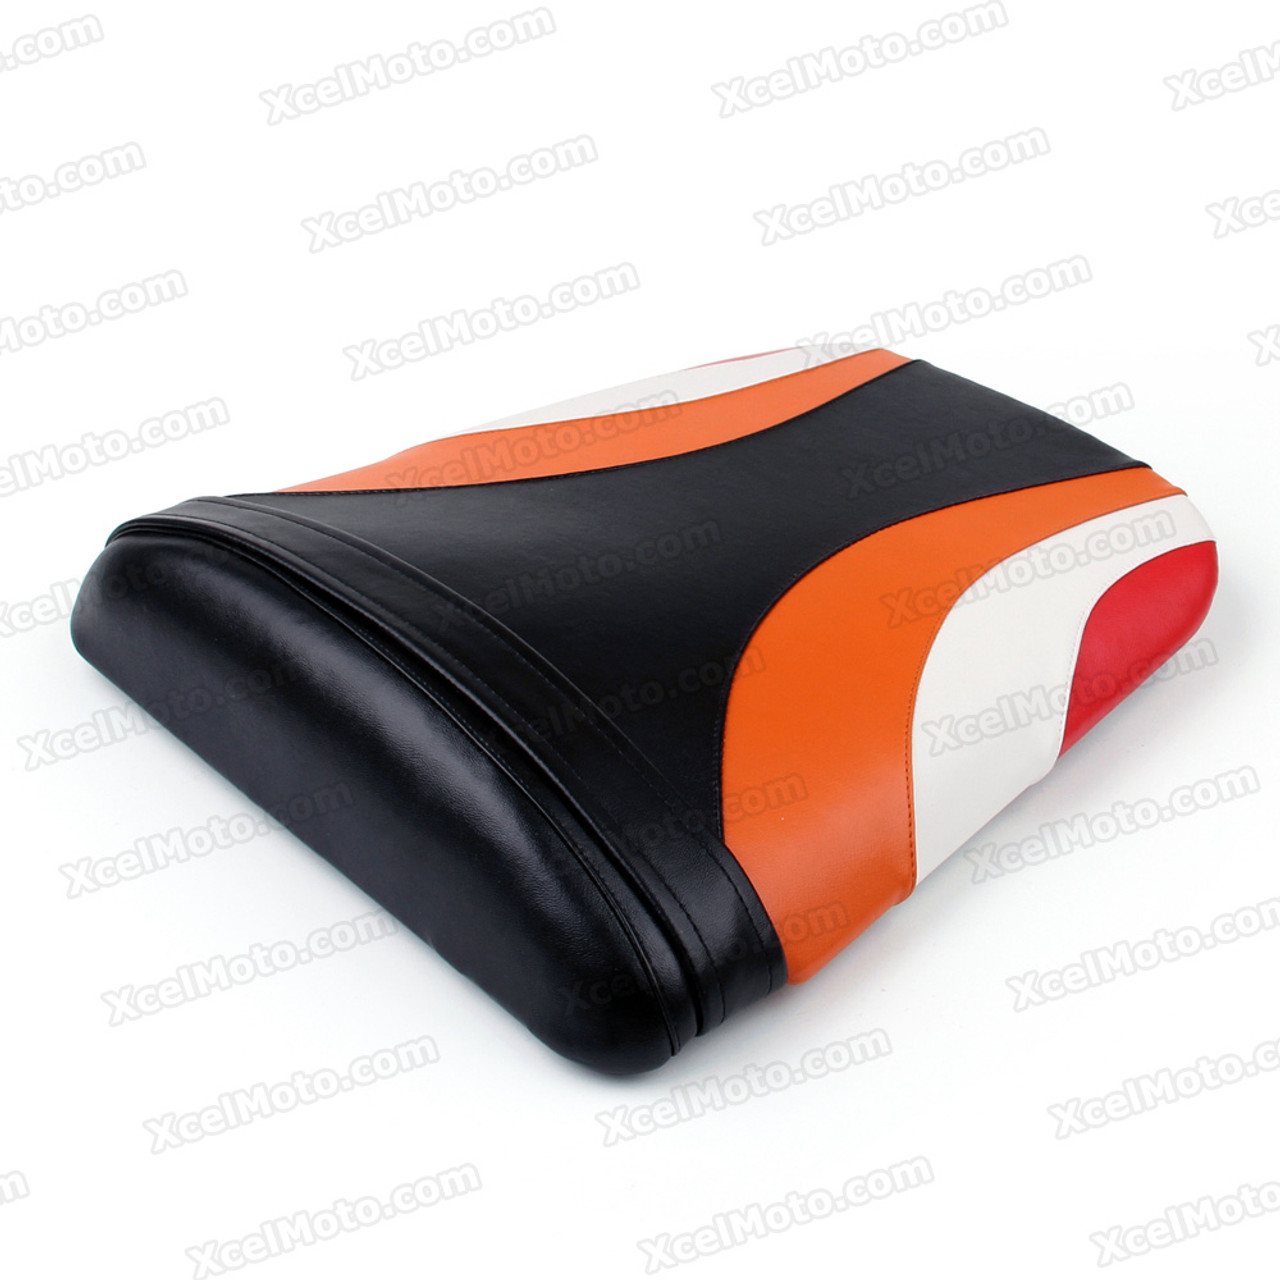 Rear Seat For Honda Cbr600rr 03 06 Repsol Leather Pillion For Cbr600rr